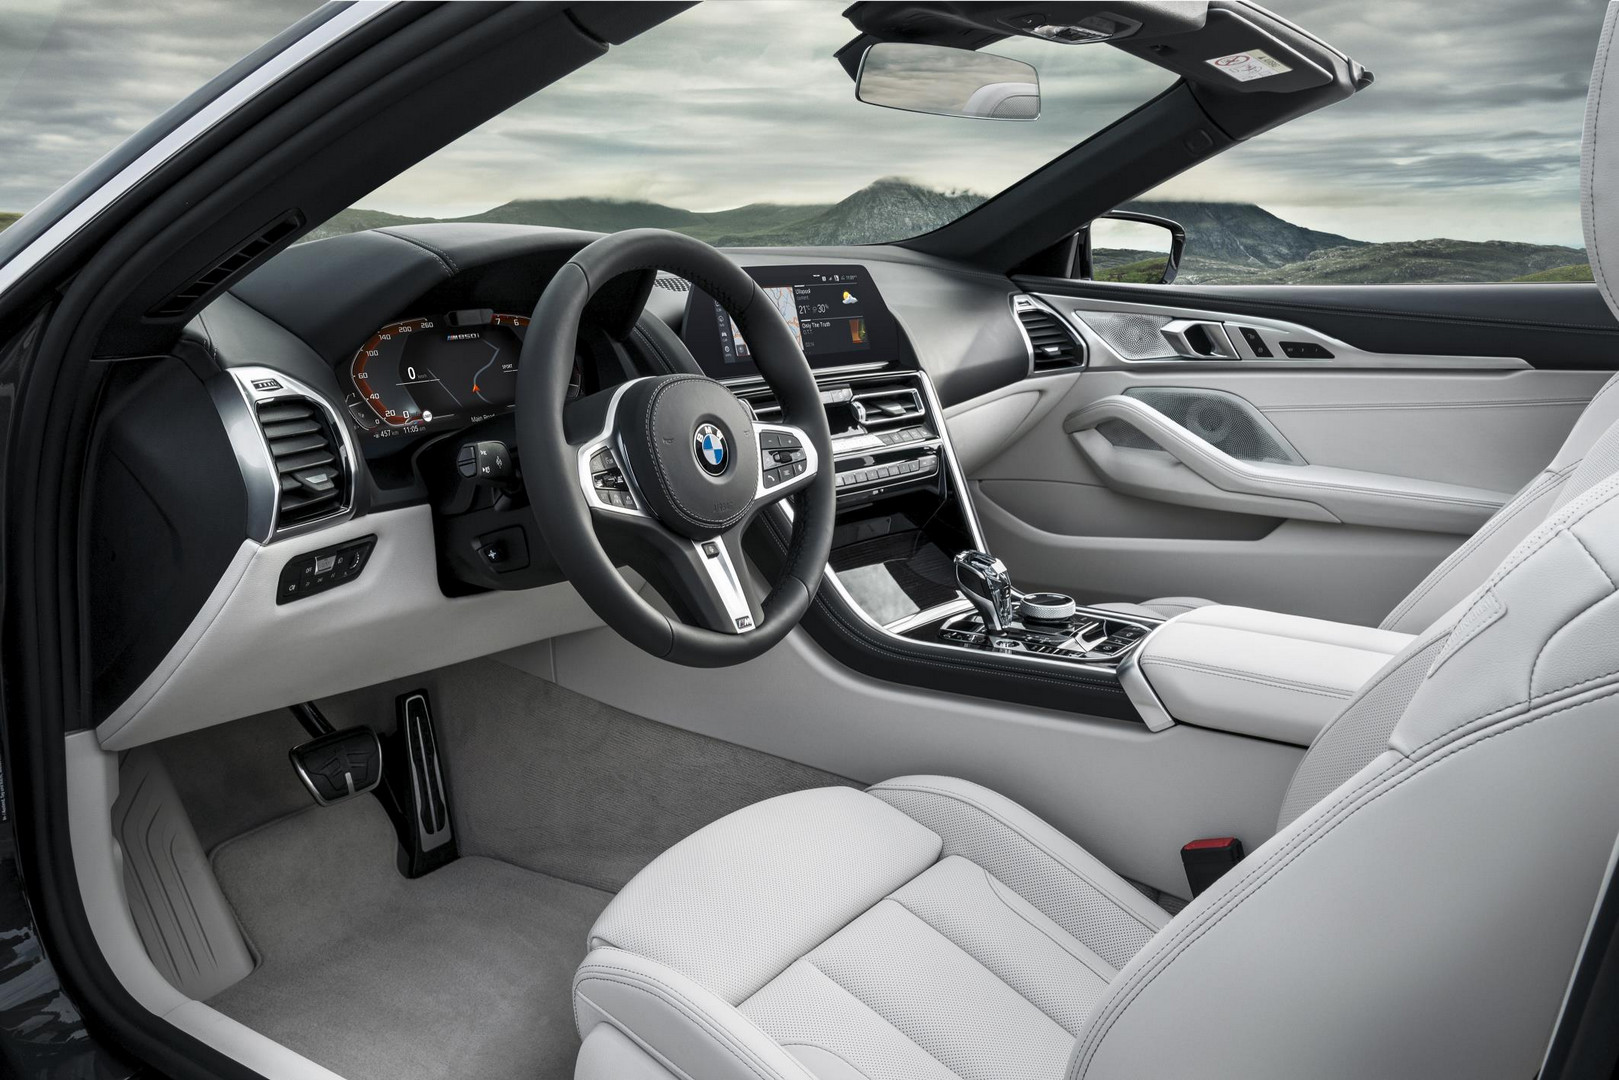 2019 BMW 8 Series Convertible Interior